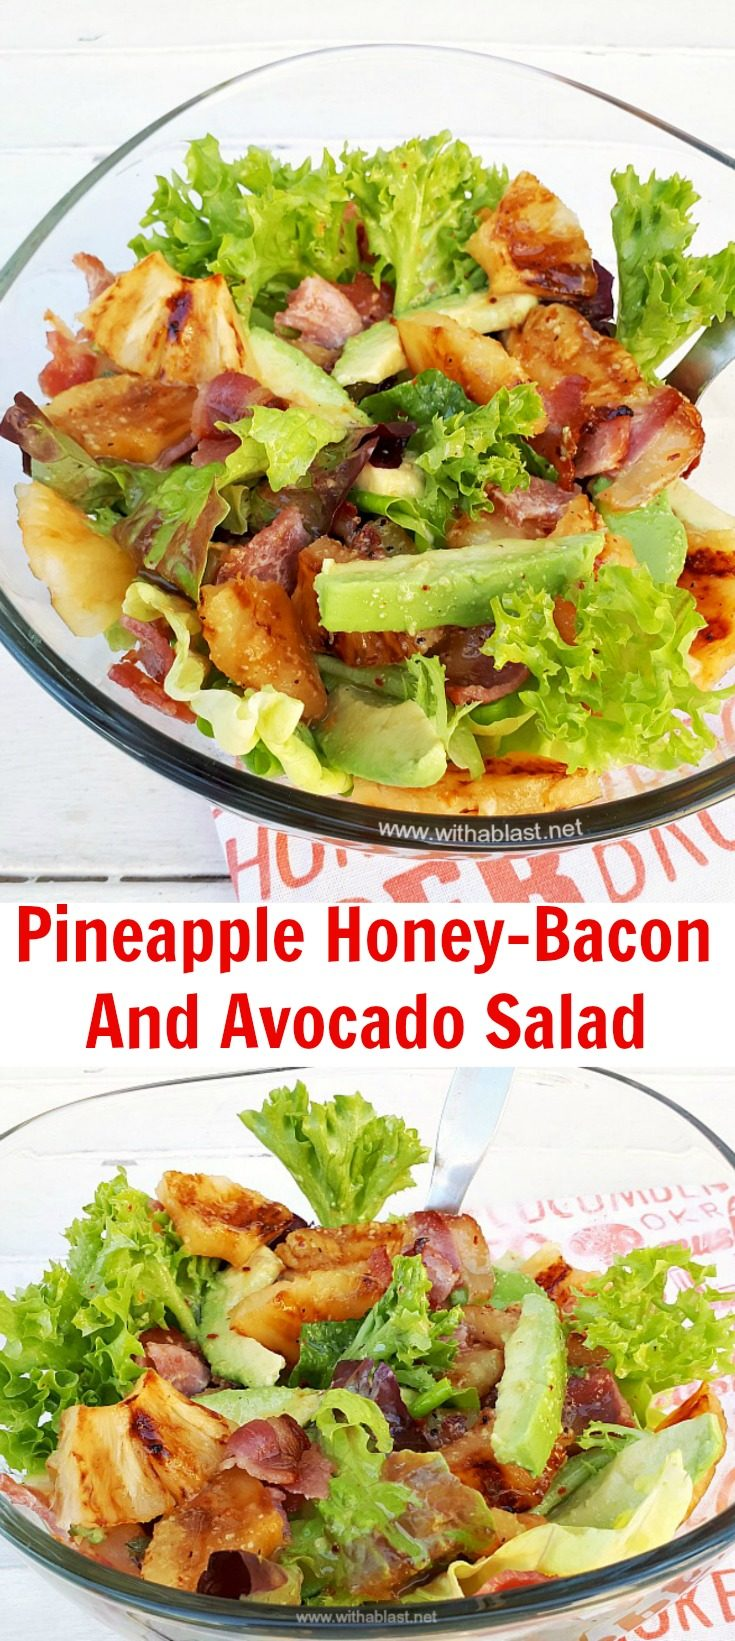 Pineapple Honey-Bacon and Avocado Salad with a light Lemon Mustard dressing is the perfect side salad and can also be served as an appetizer #Appetizer #SaladAppetizer #HoneyBacon #GrilledPineapple